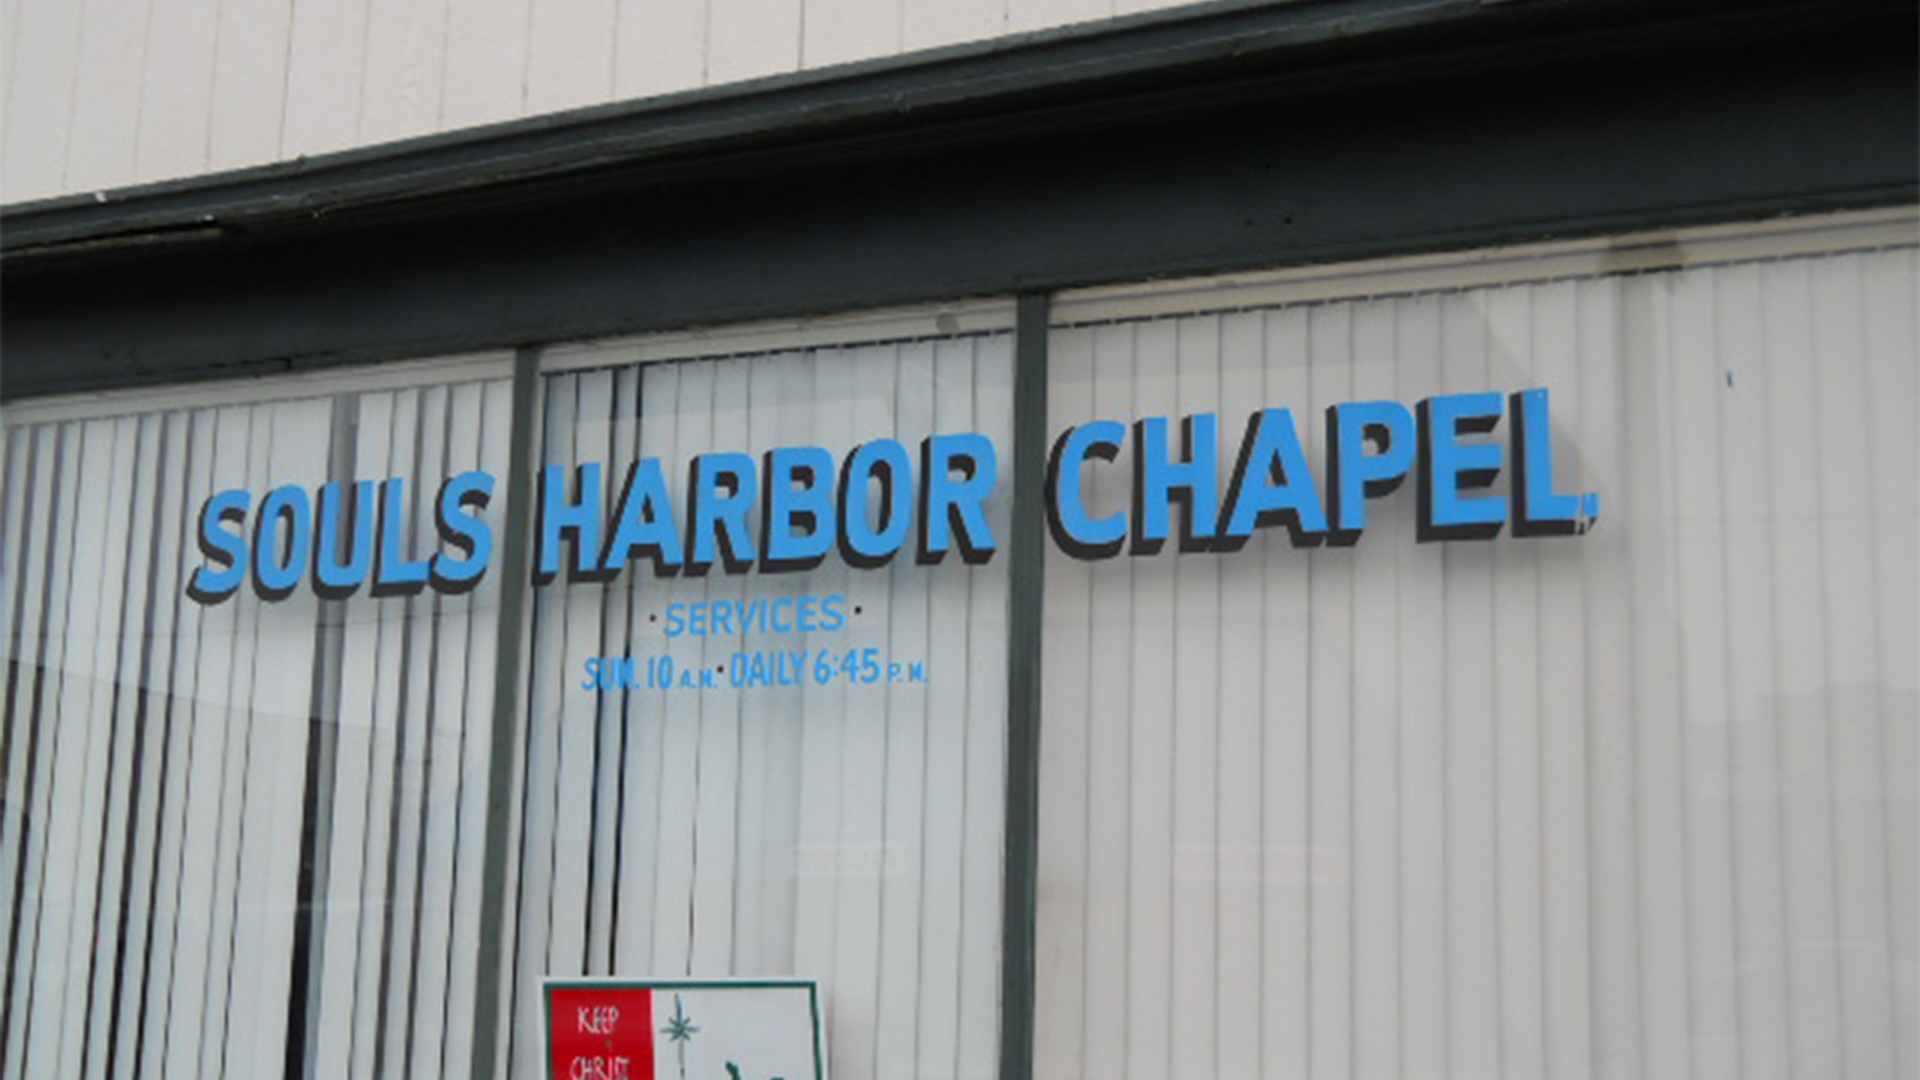 Souls Harbor - We are a Christ-centered, multifaceted human services and homeless shelter. We strive to be a light for the homeless, less fortunate, and the hurting.